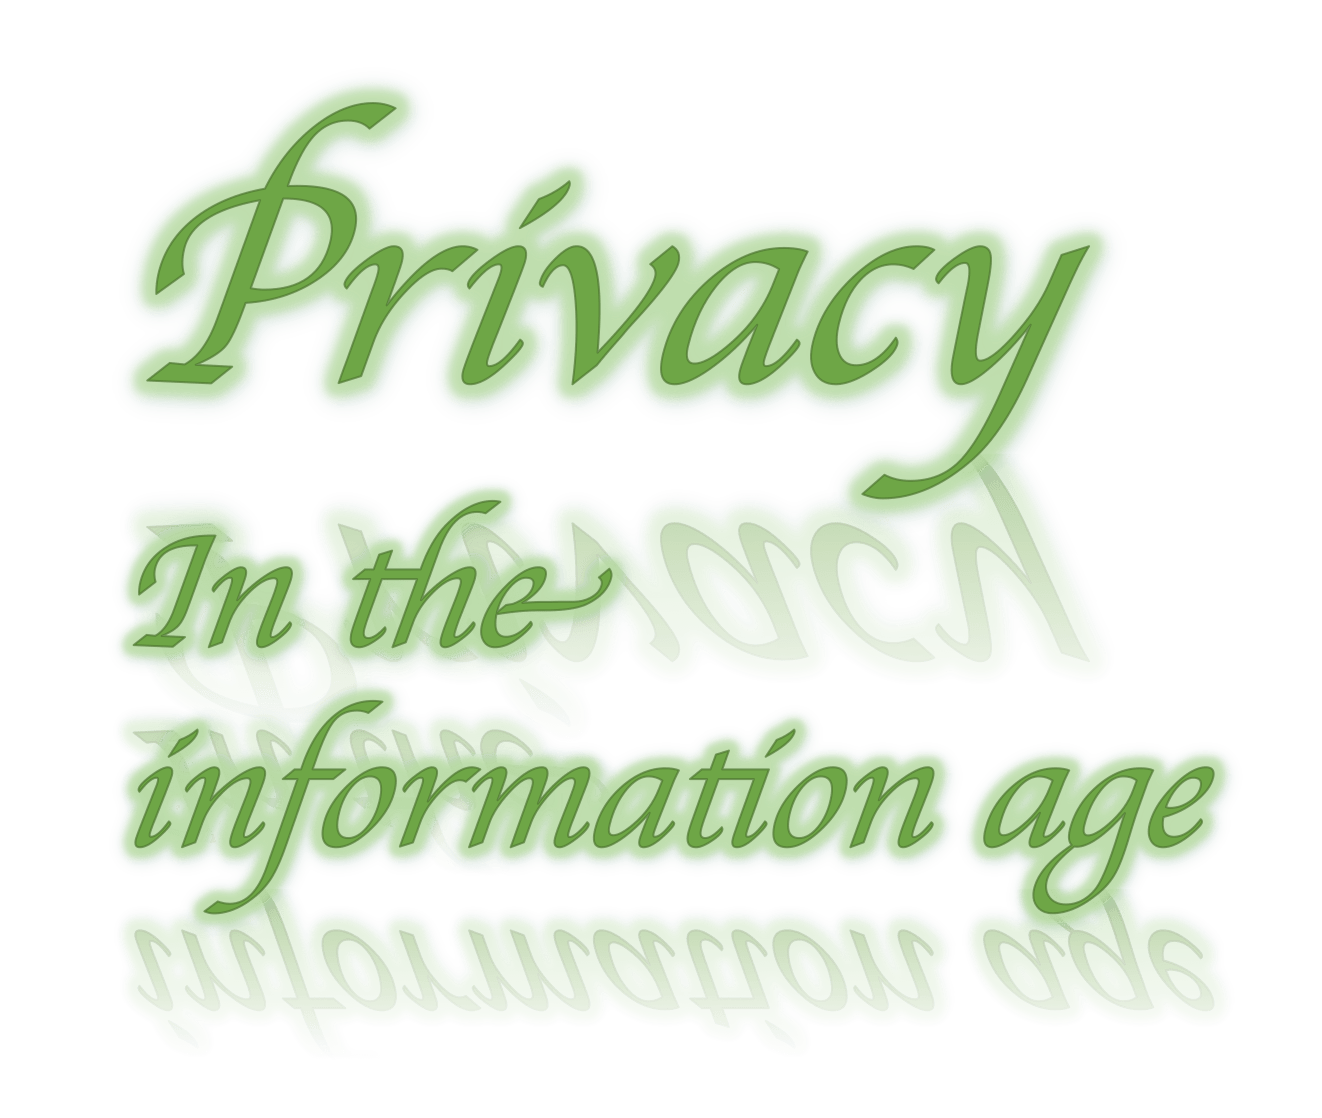 privacy in the information age essay Unlike most editing & proofreading services, we edit for everything: grammar, spelling, punctuation, idea flow, sentence structure, & more get started now.